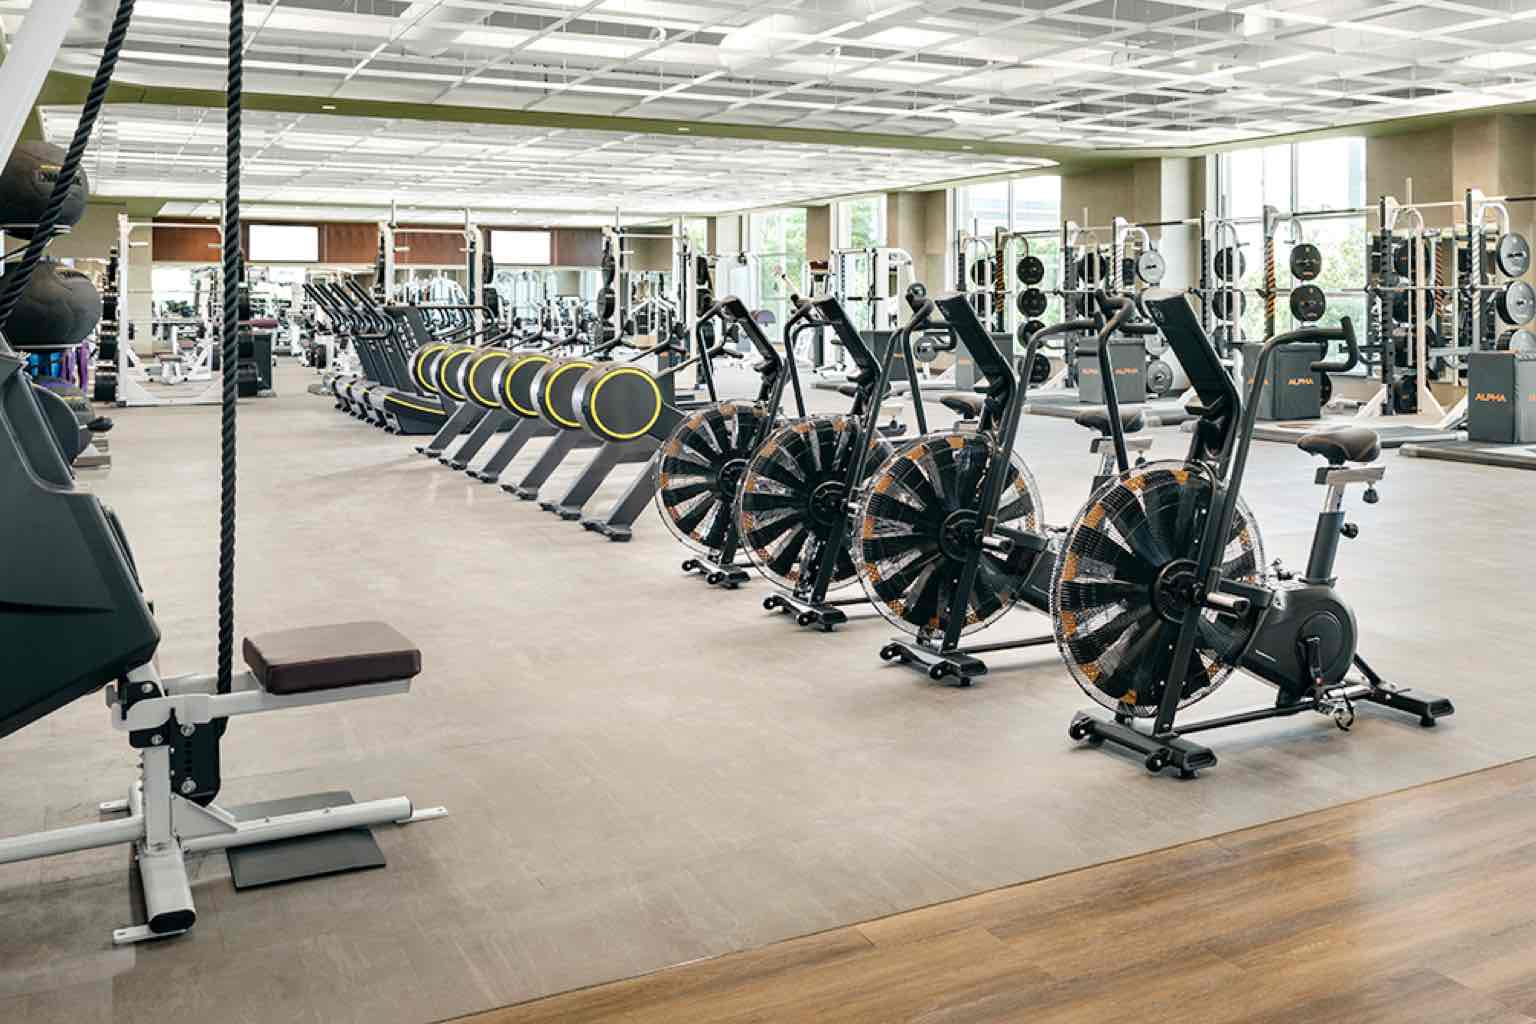 A wooden fitness floor with Olympic-style training platforms, cardio and weight machines and racks of exercise balls